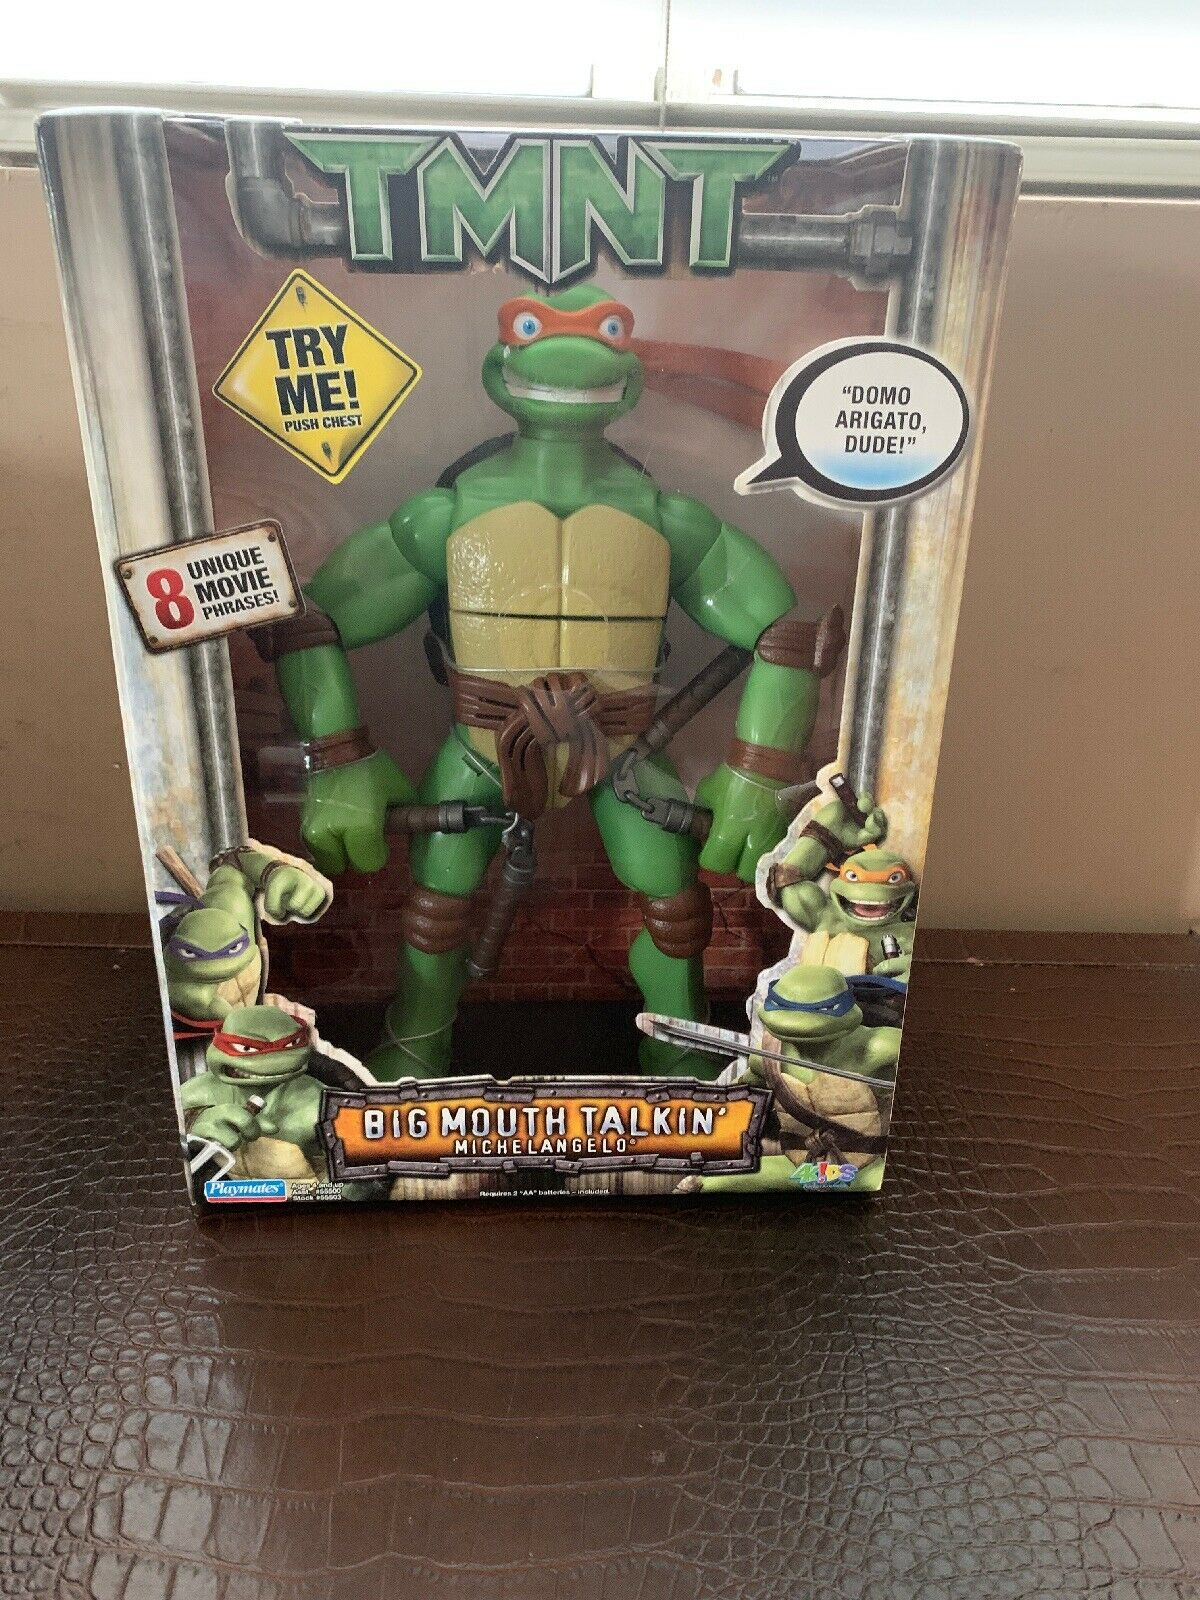 Teenage Mutant Ninja Turtles 2006 BIG MOUTH TALKIN' MICHELANGELO 12  Elec. Fig